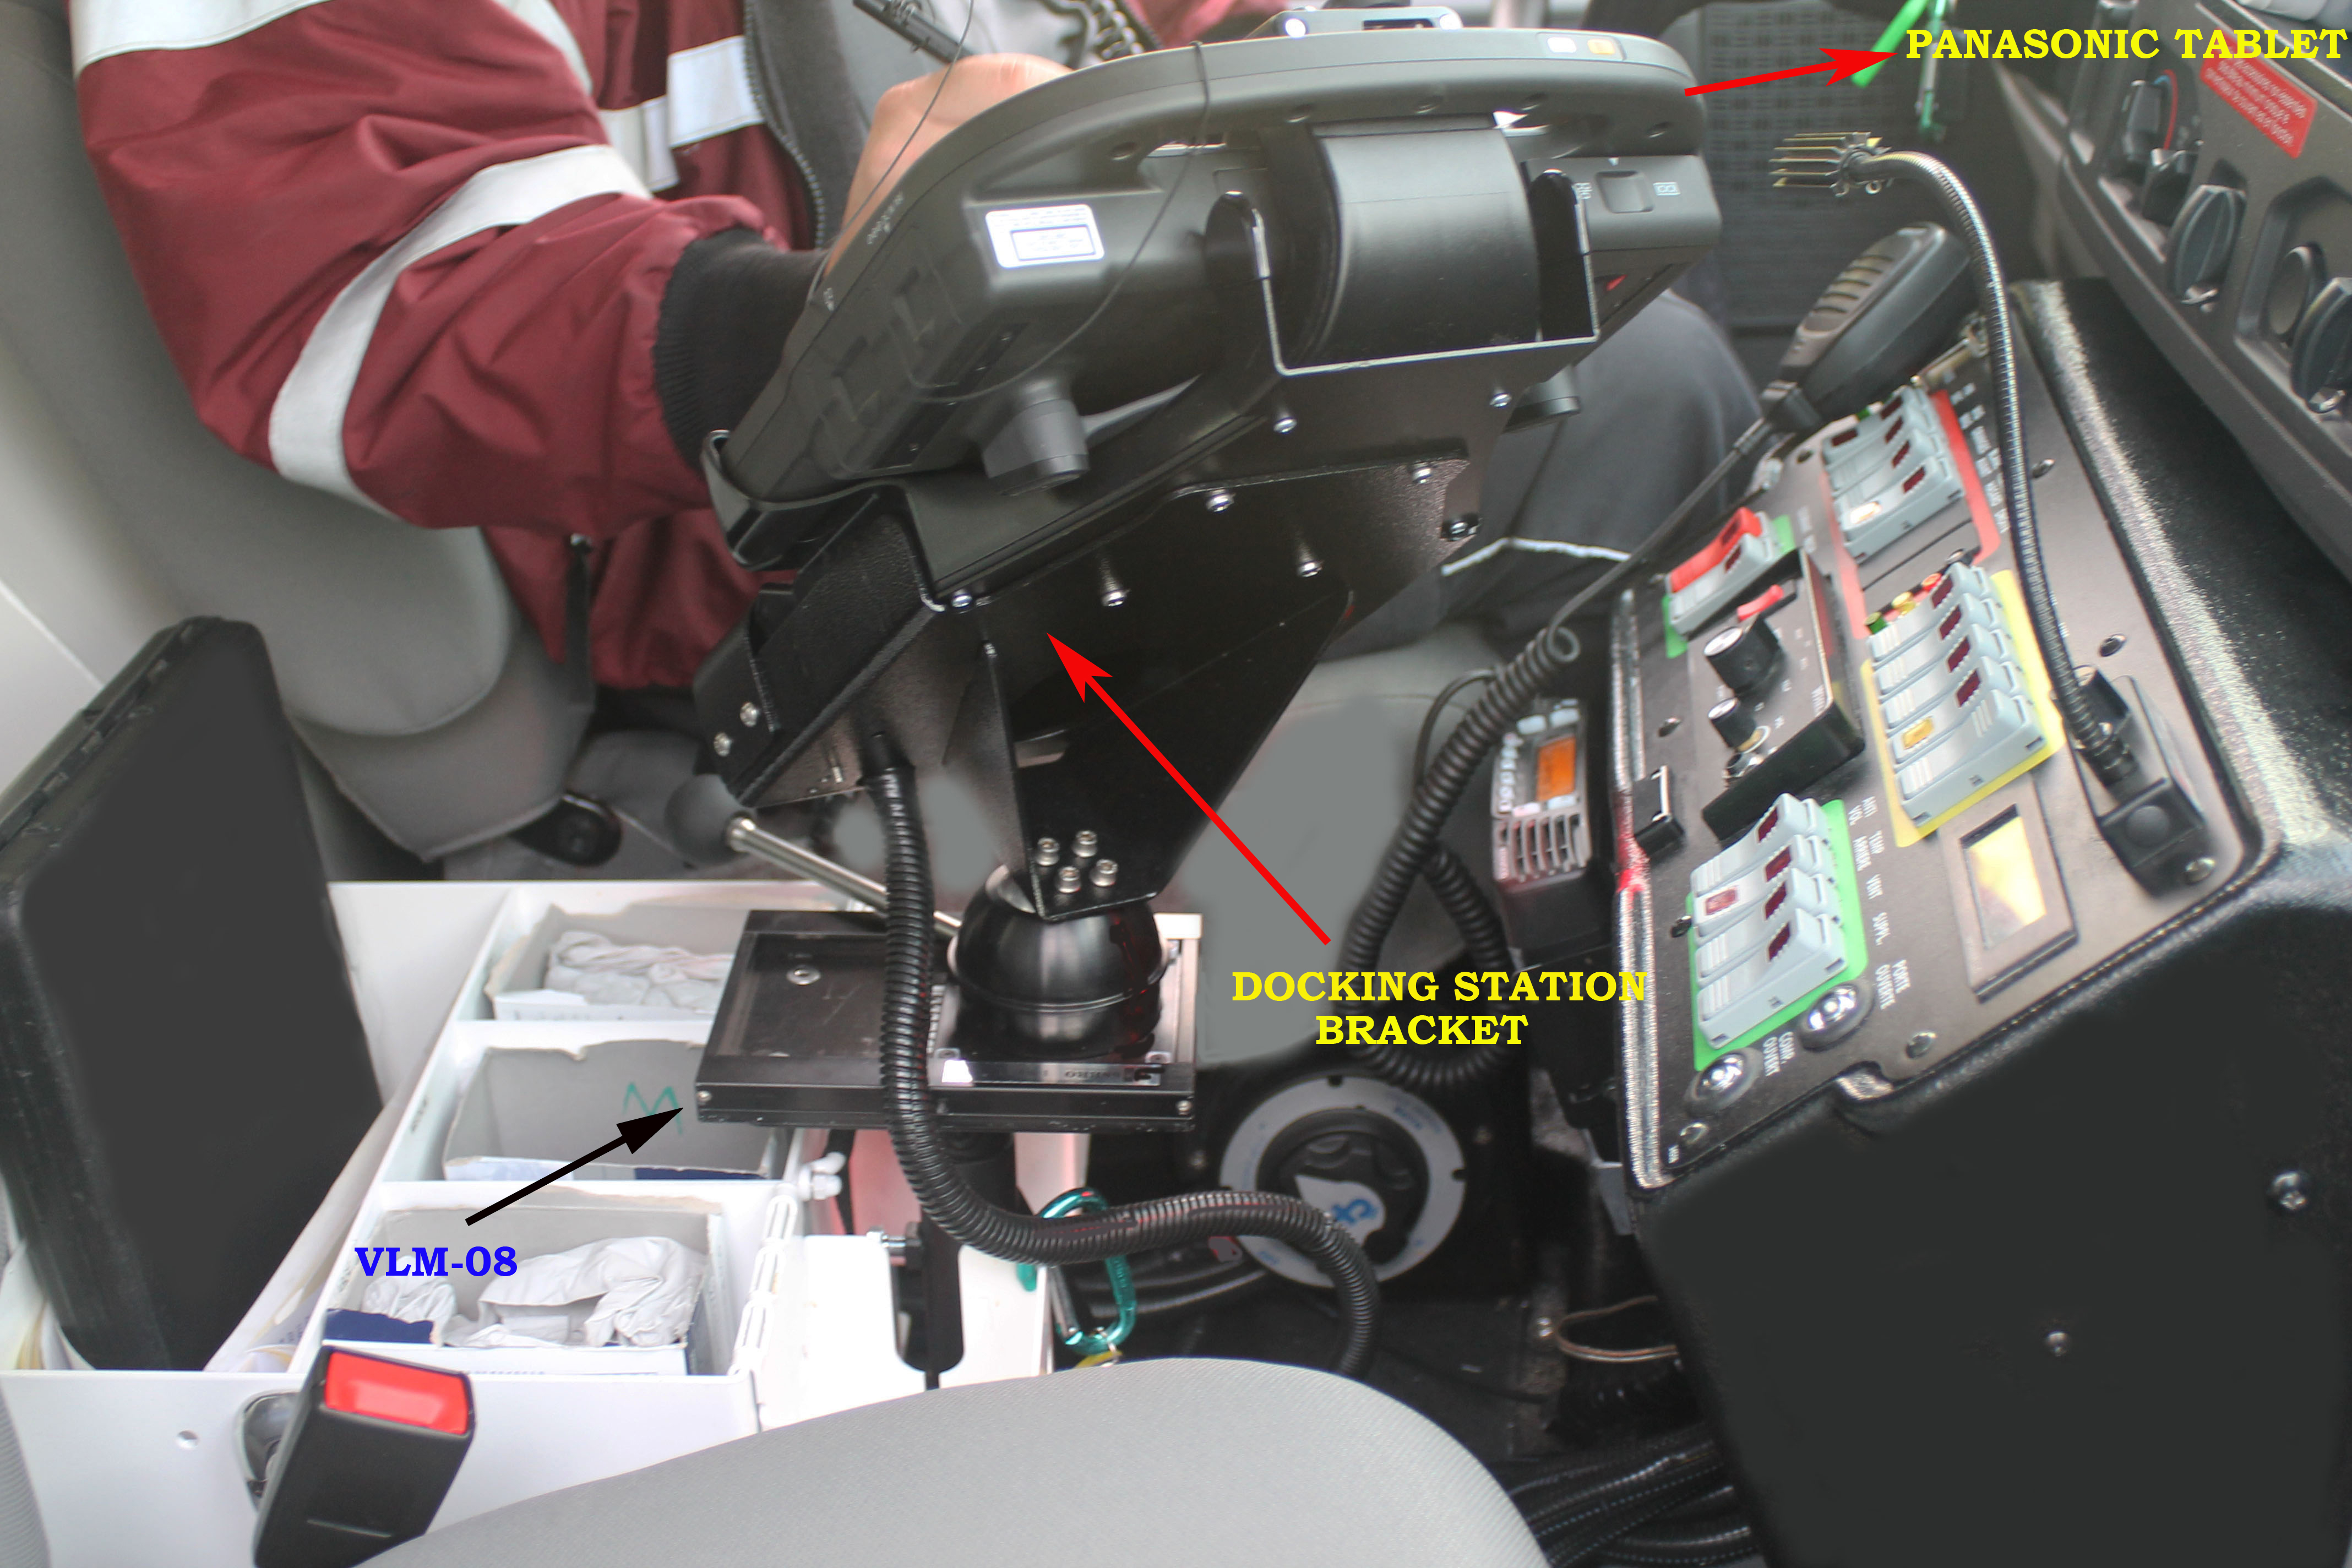 VLM-08 Vehicle Computer Mount in Ambulance, rearview of panasonic tablet mount - Rossbro - Québec, Canada